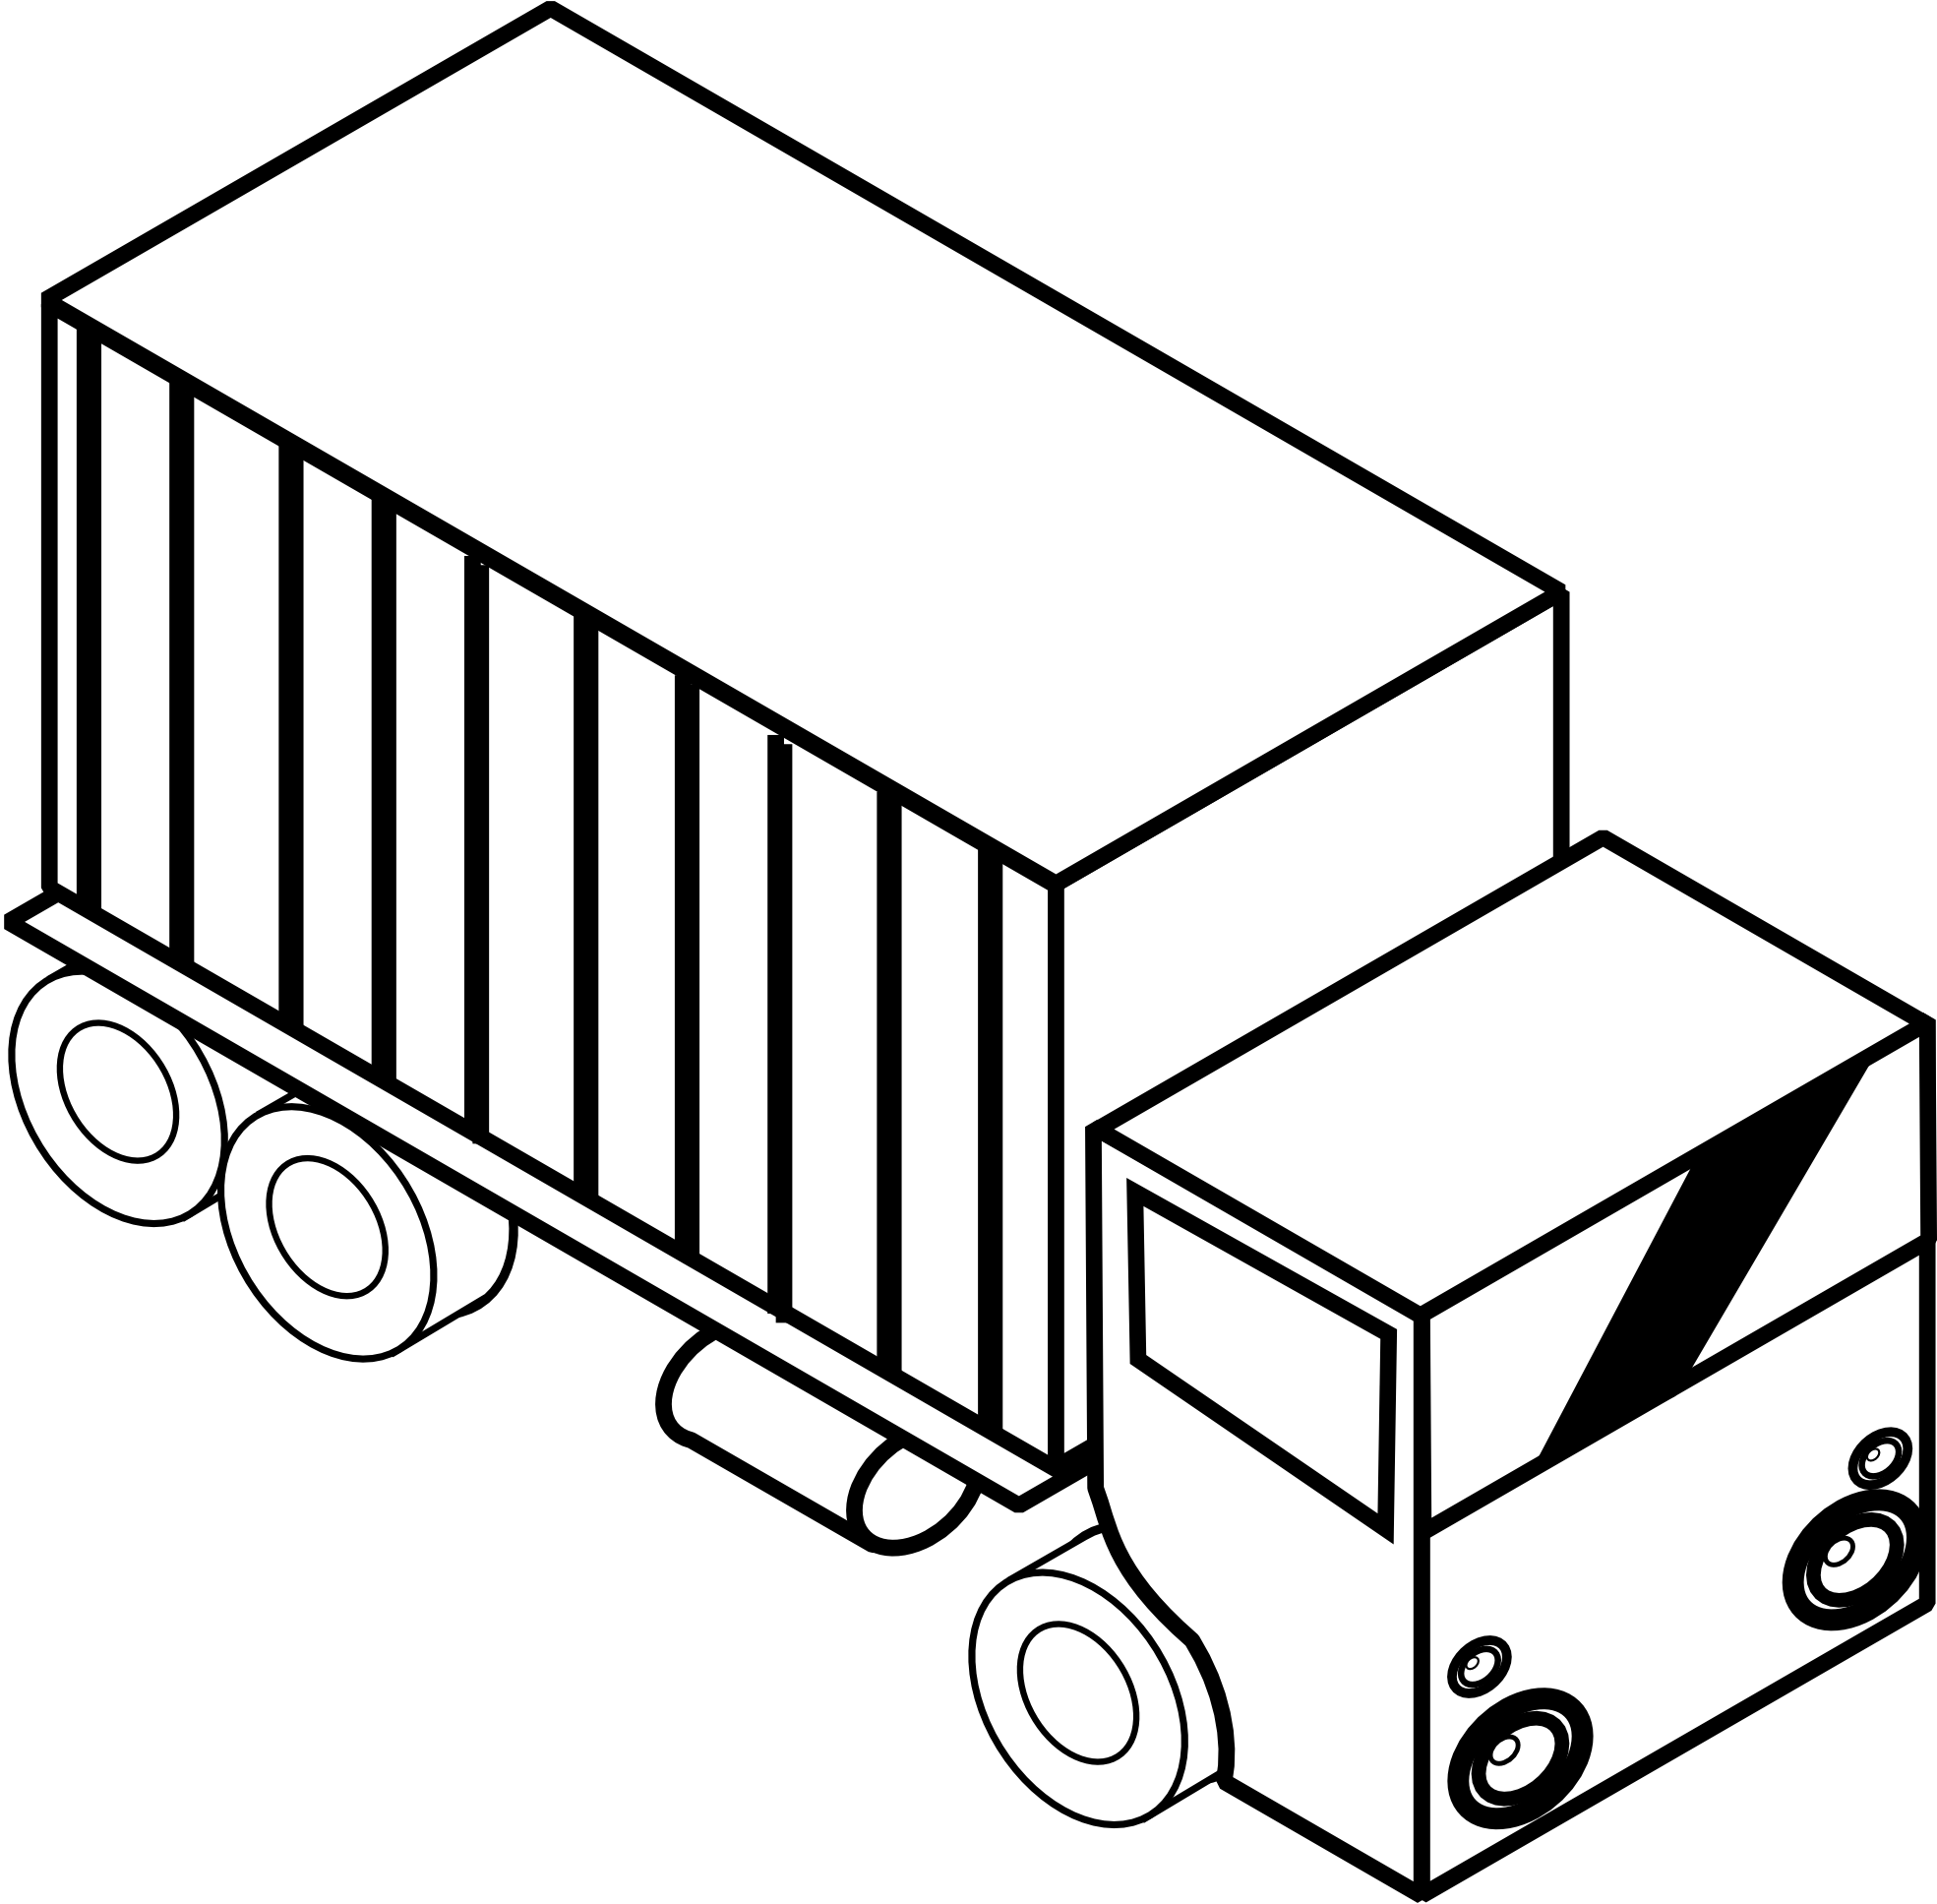 Truck panda free images. Engine clipart black and white